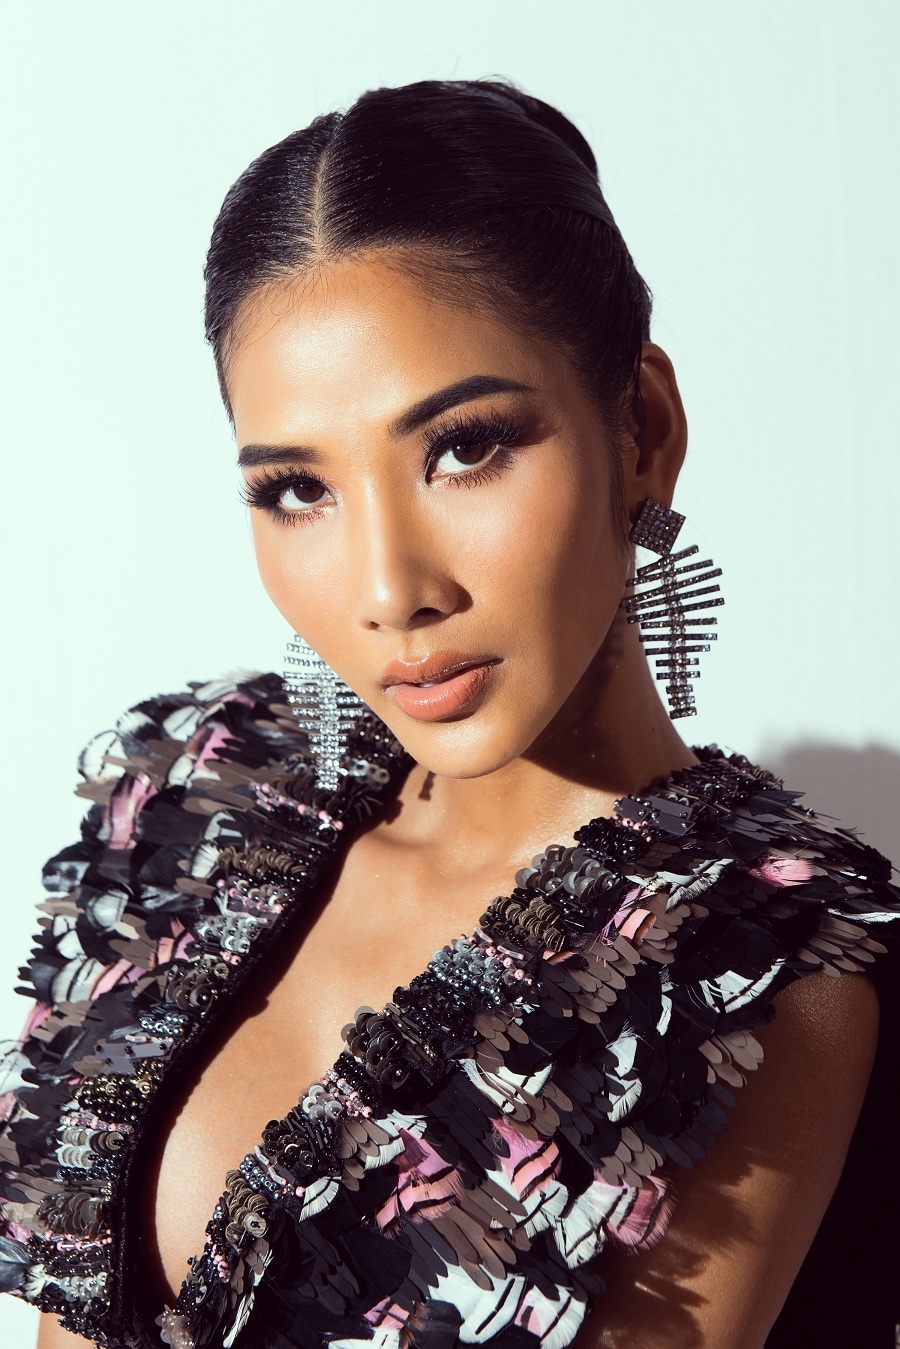 cong bo phat song series digital road to miss universe 2019 hoang thuy beauty queen is now or never